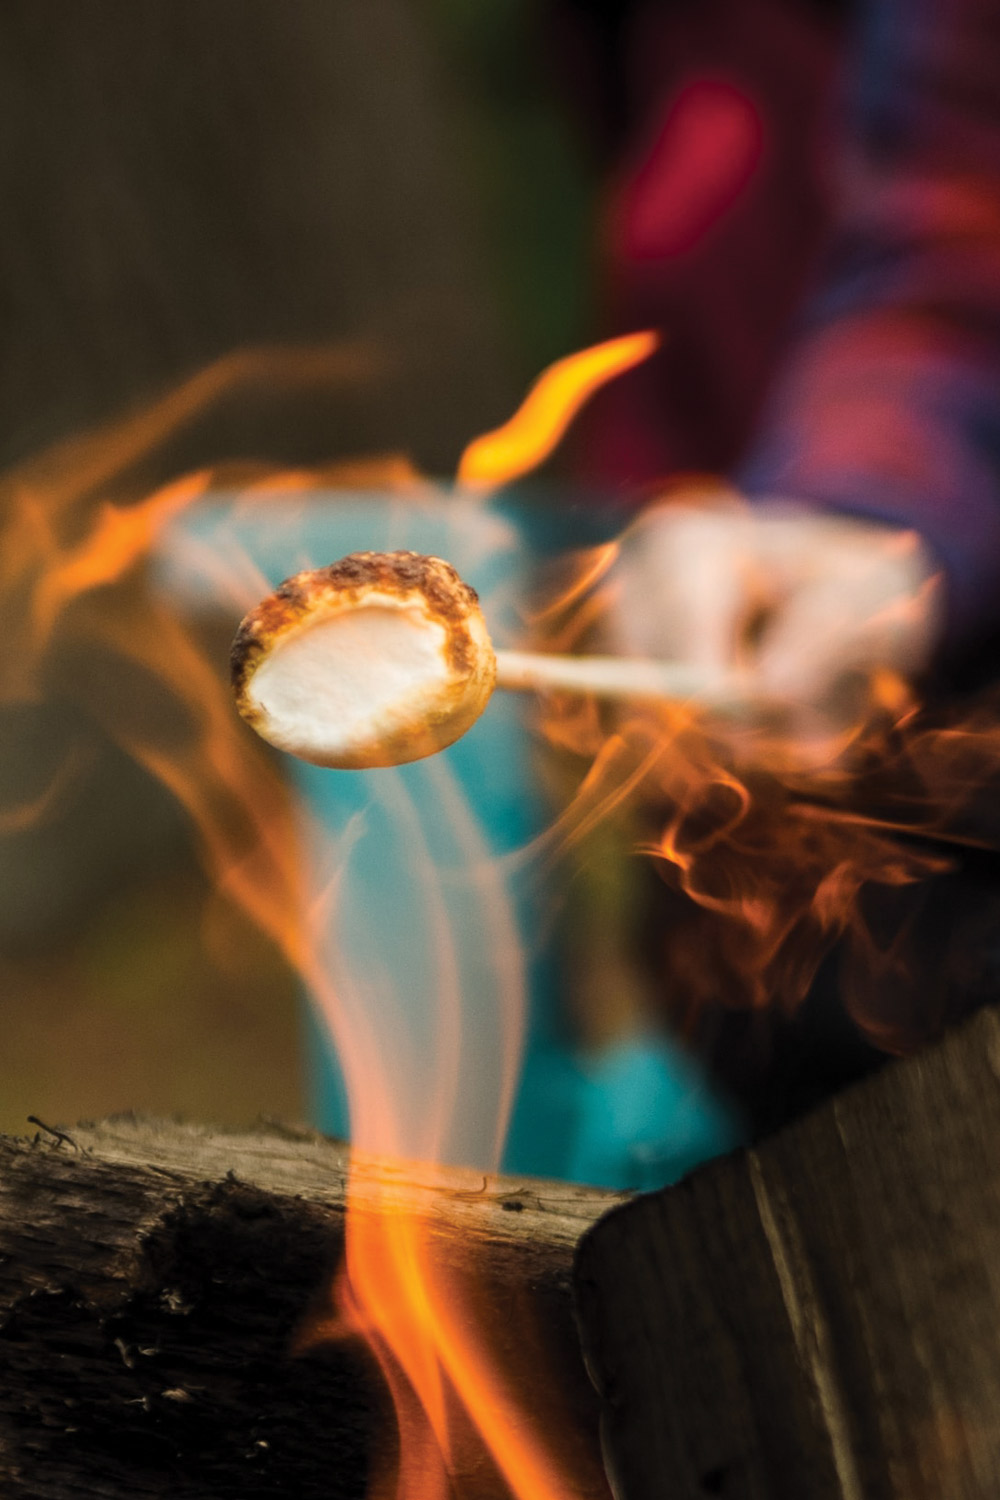 Roasting the perfect marshmallow my way-with flames a blazing.